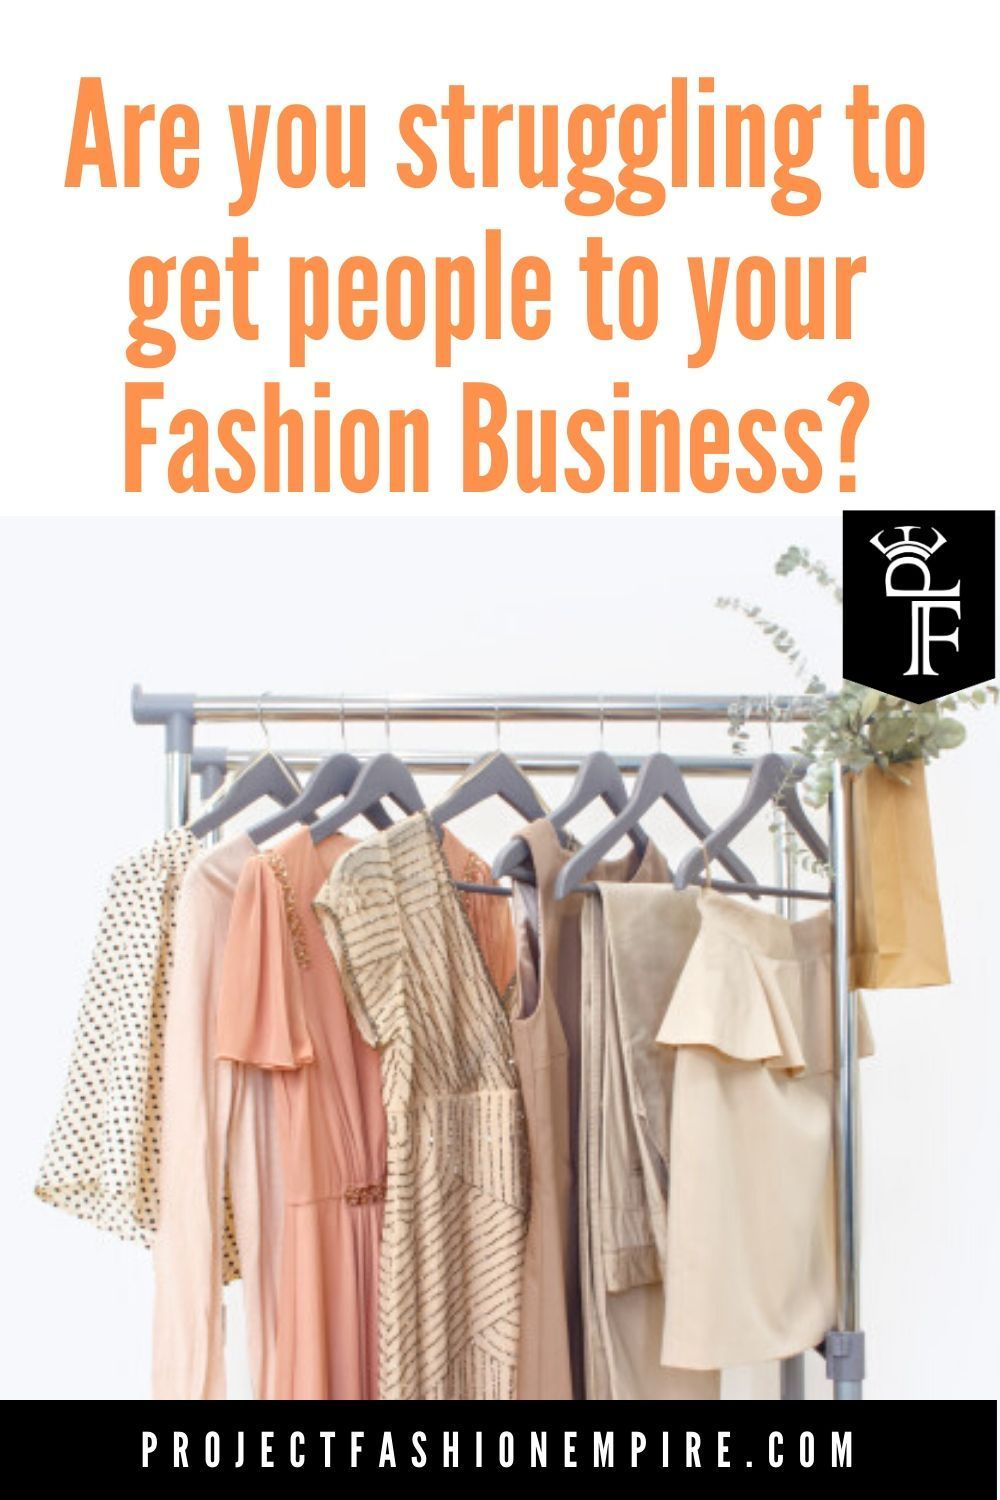 Fashion Business Plan To Double Your Sales 2020 In 2020 Fashion Business Plan Fashion Marketing Campaign Business Fashion